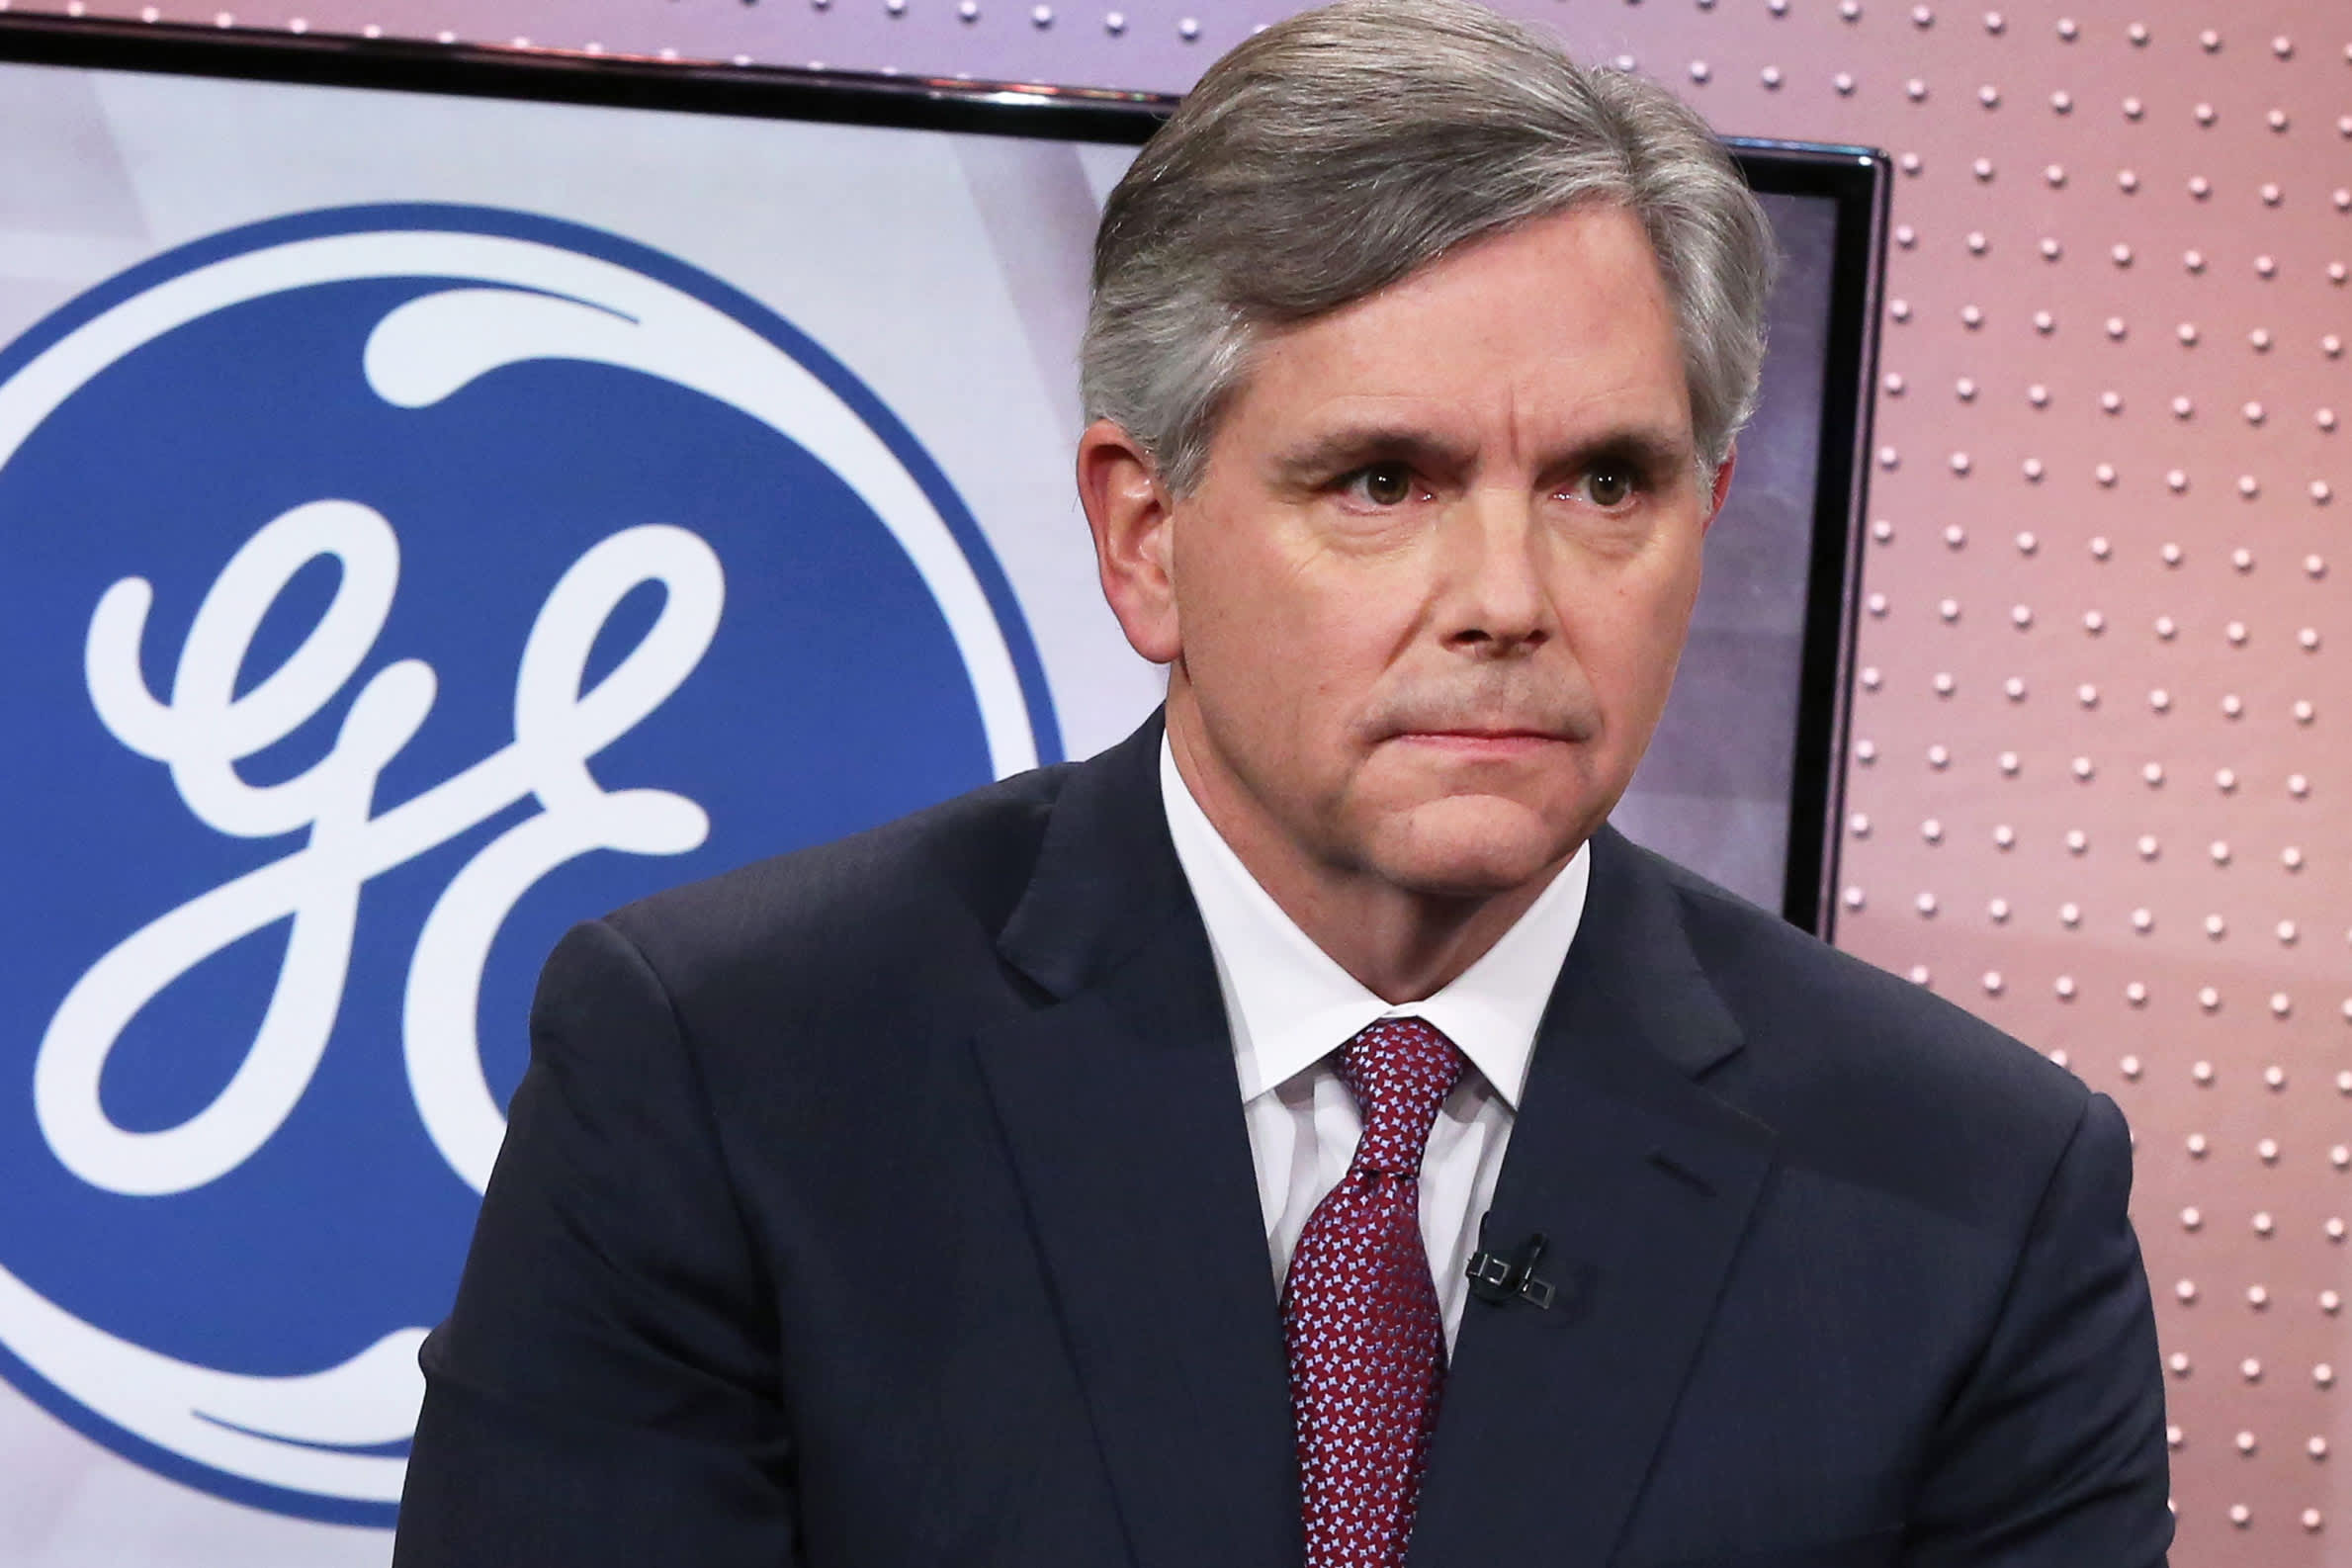 GE CEO Larry Culp bought nearly $2 million worth of the company's stock after fraud accusation